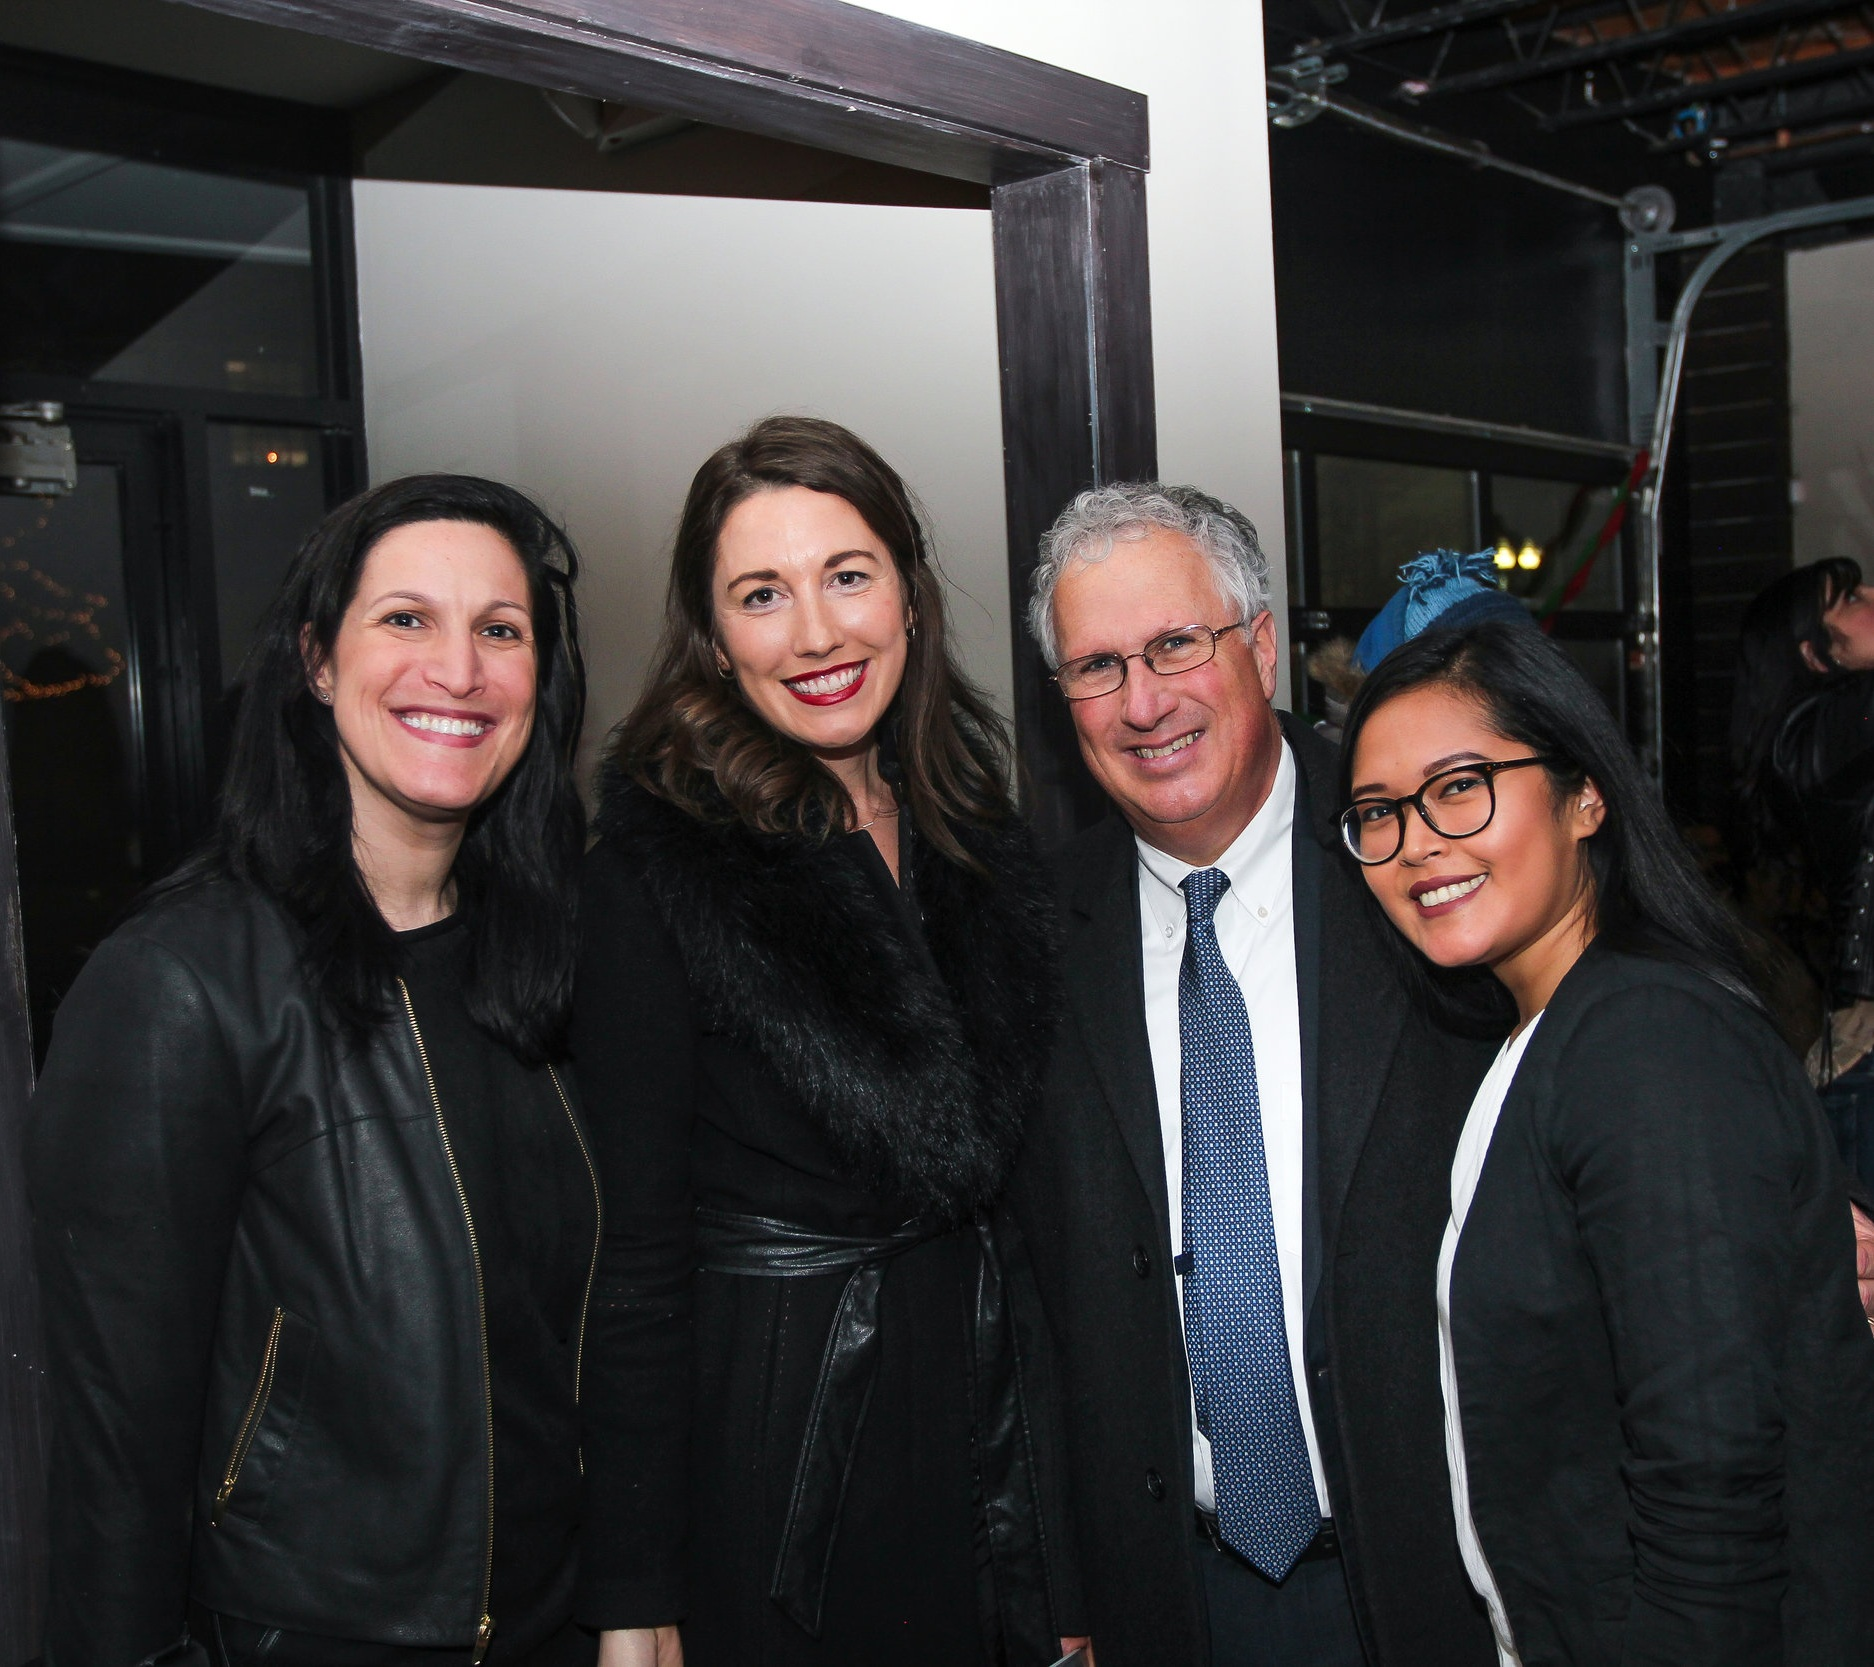 Meggan Levene, Liza Ryan, Mayor Thomas McGee, and Cinda Danh at the release party for Faces of Lynn Magazine Issue #2